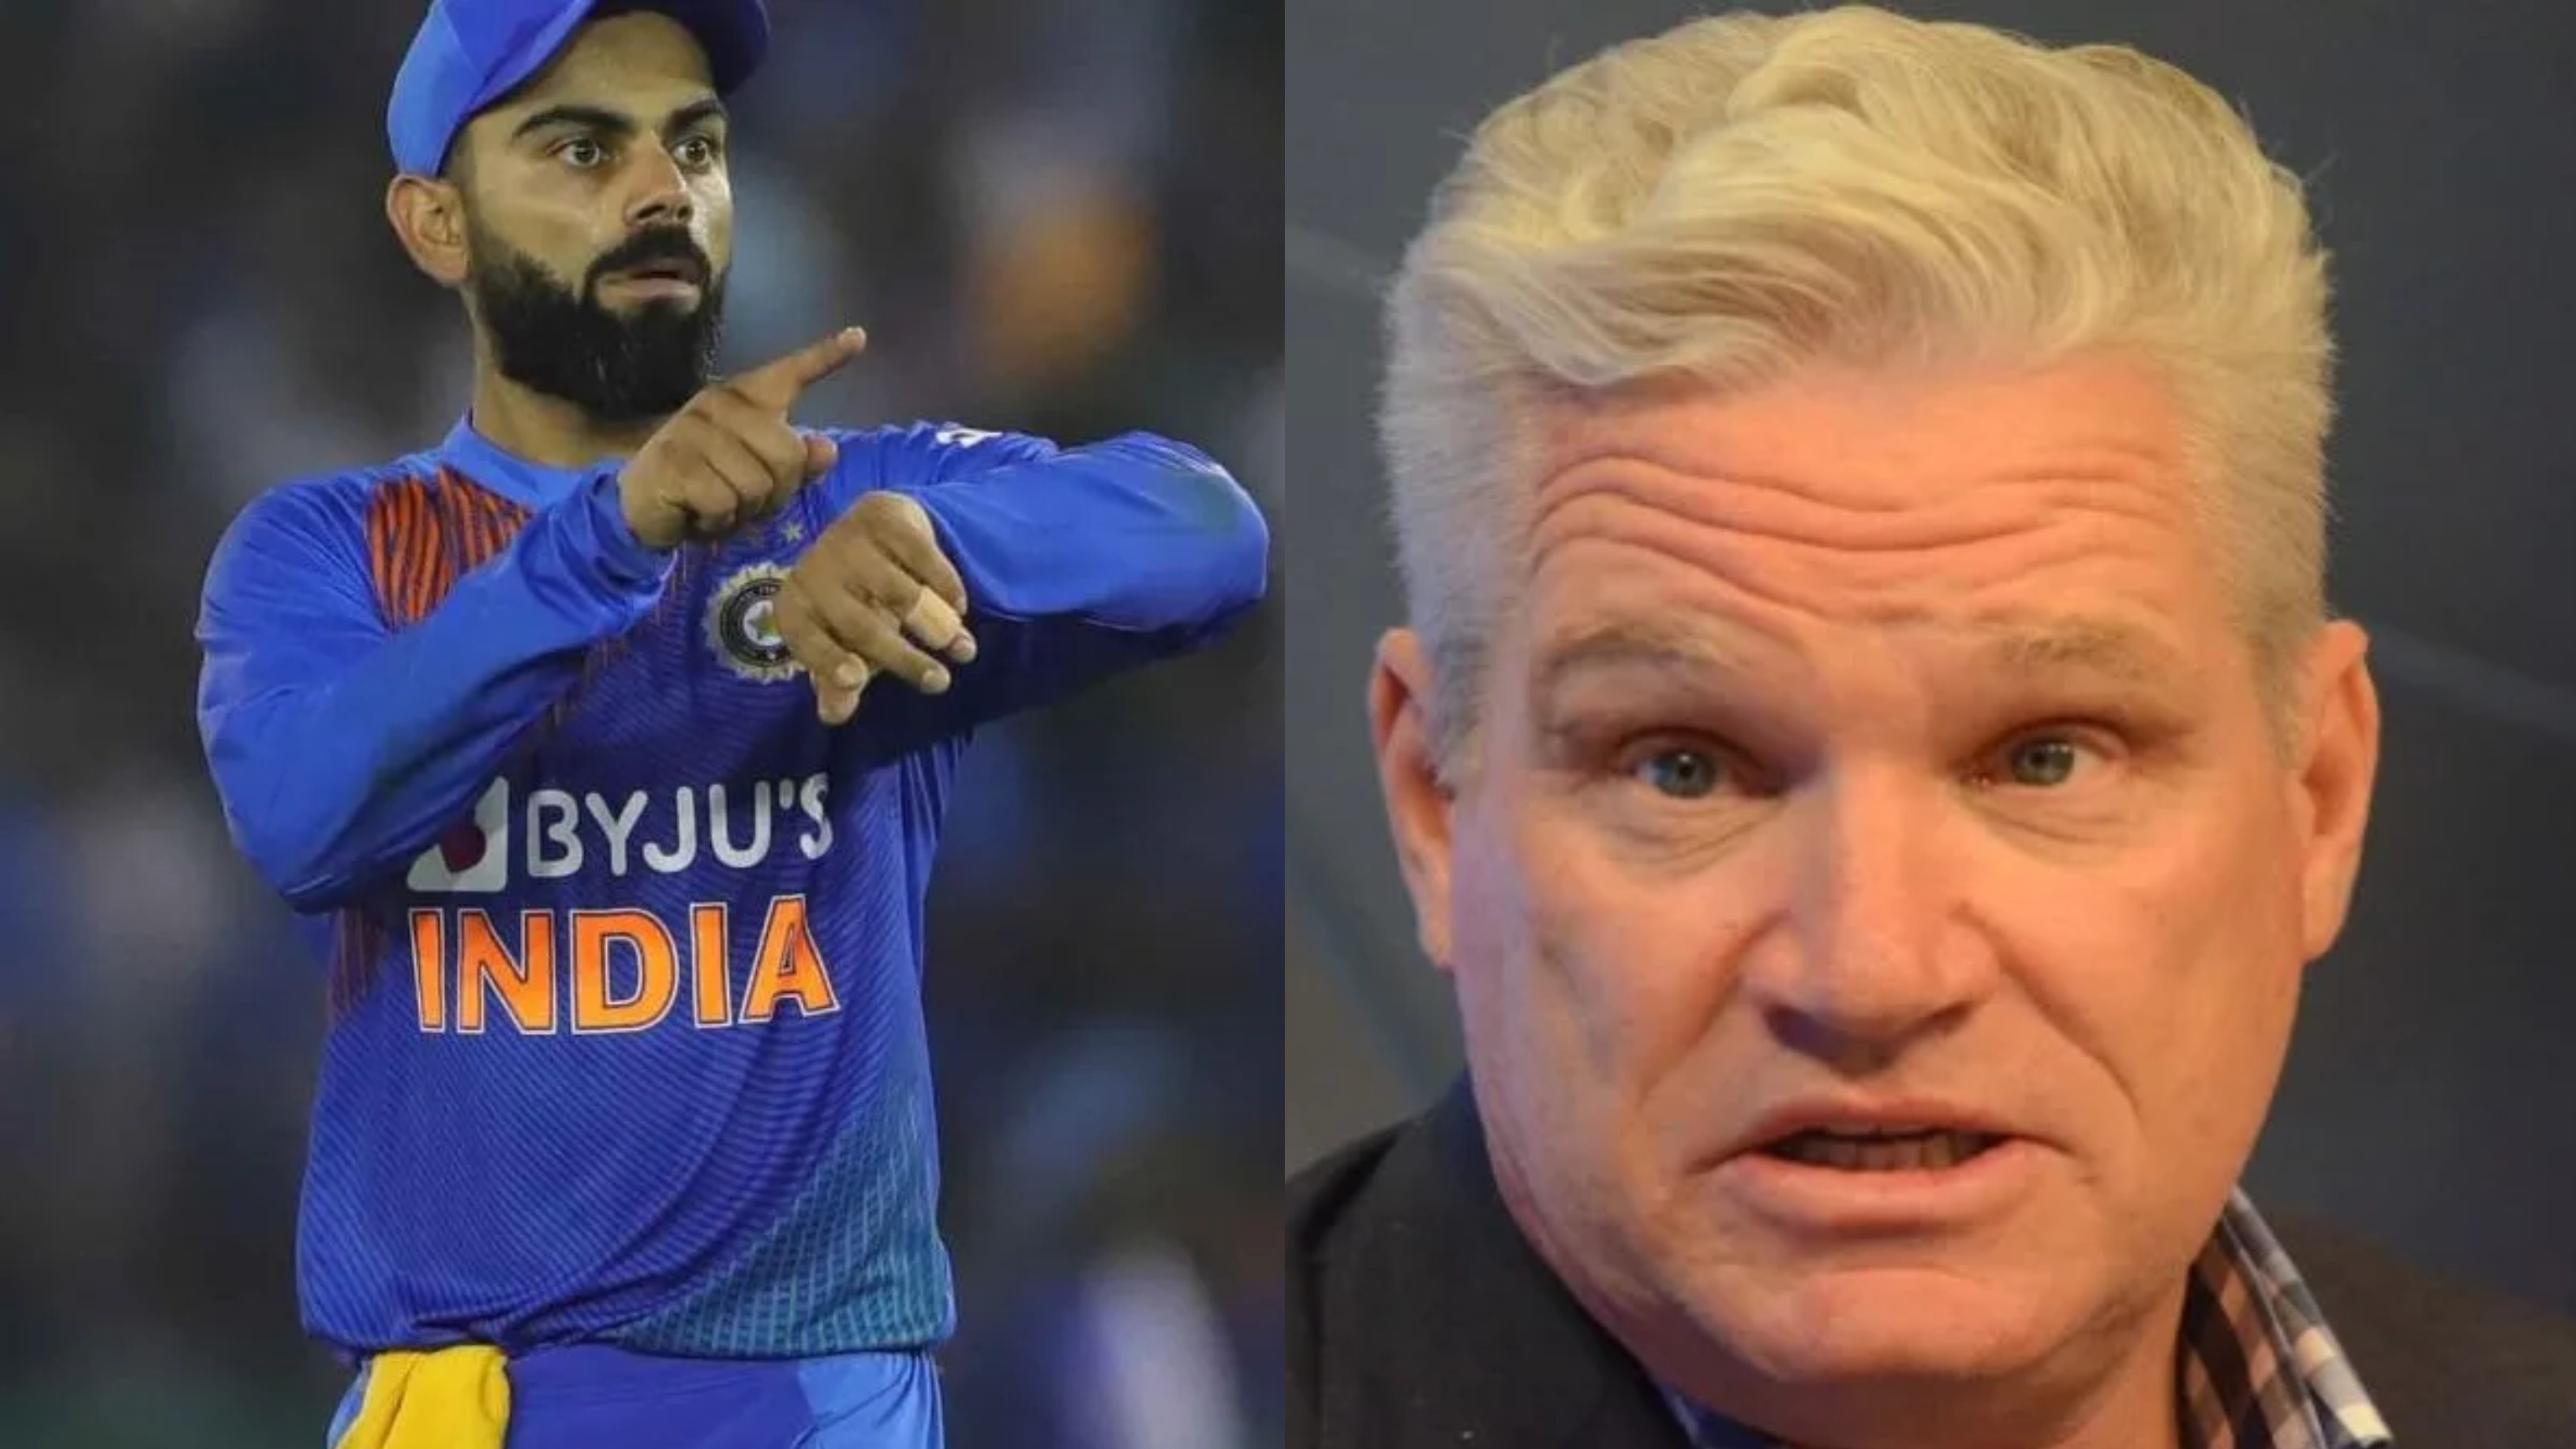 IND v BAN 2019: Virat Kohli's absence offers an opportunity for others to shine, says Dean Jones